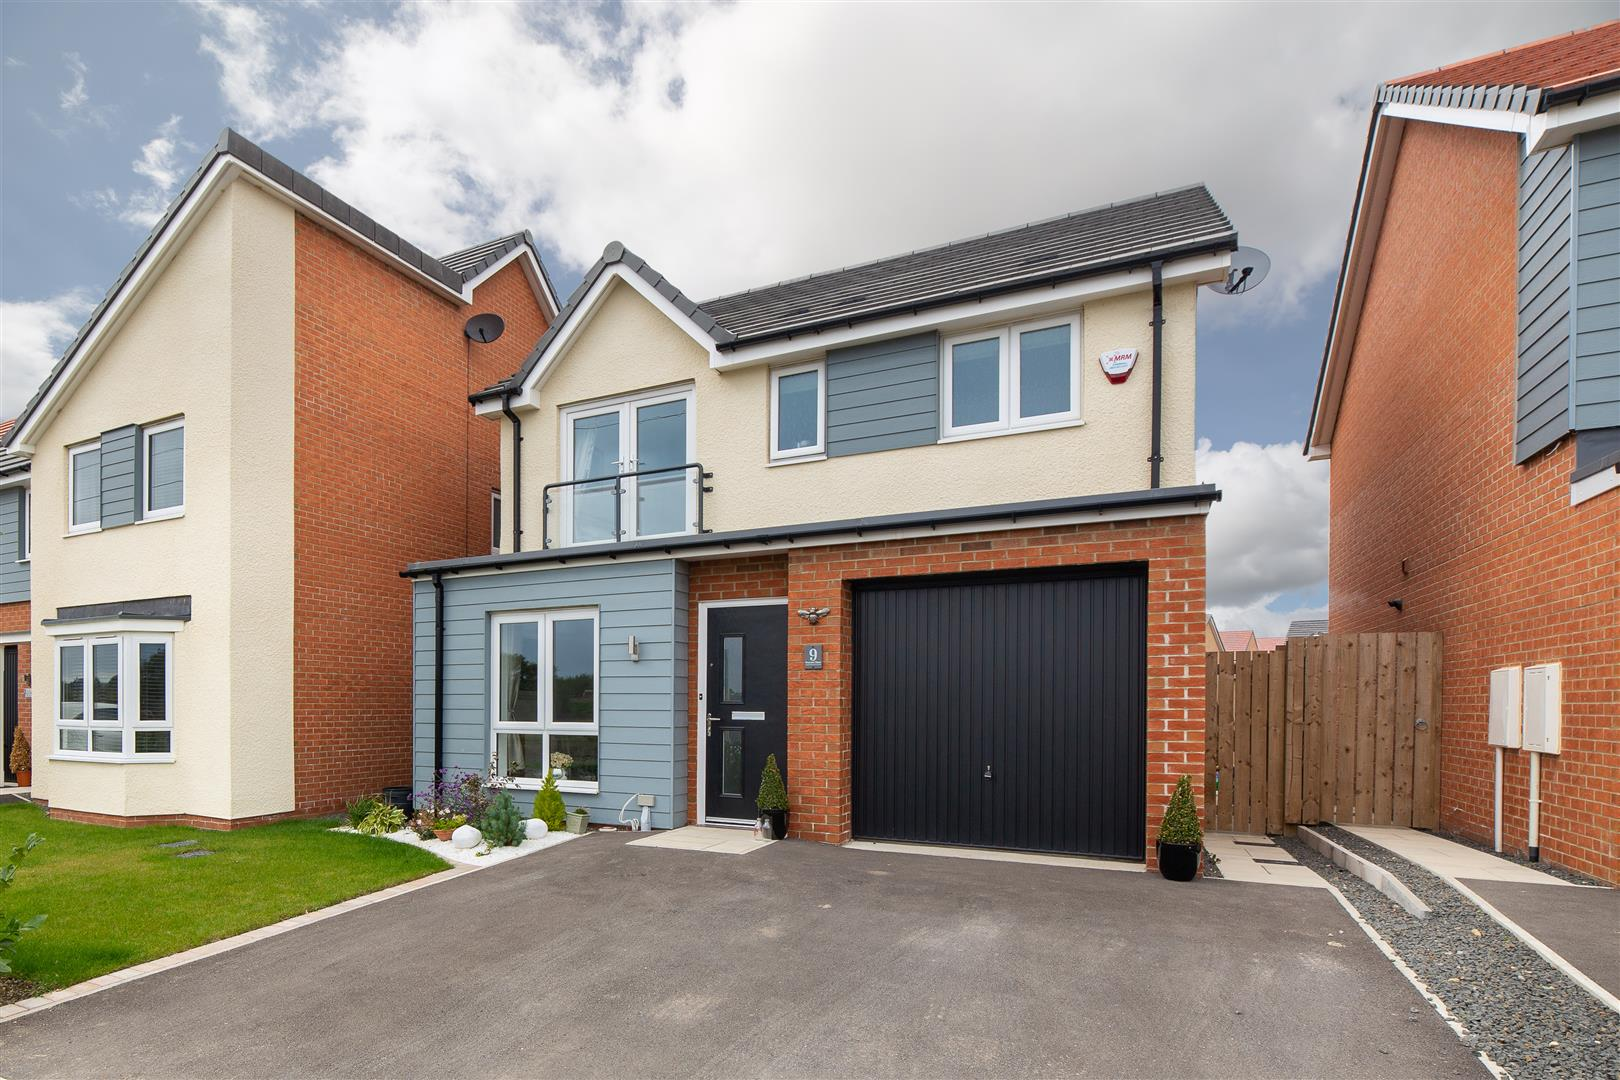 3 bed detached house for sale in Great Park, NE13 9EF  - Property Image 1